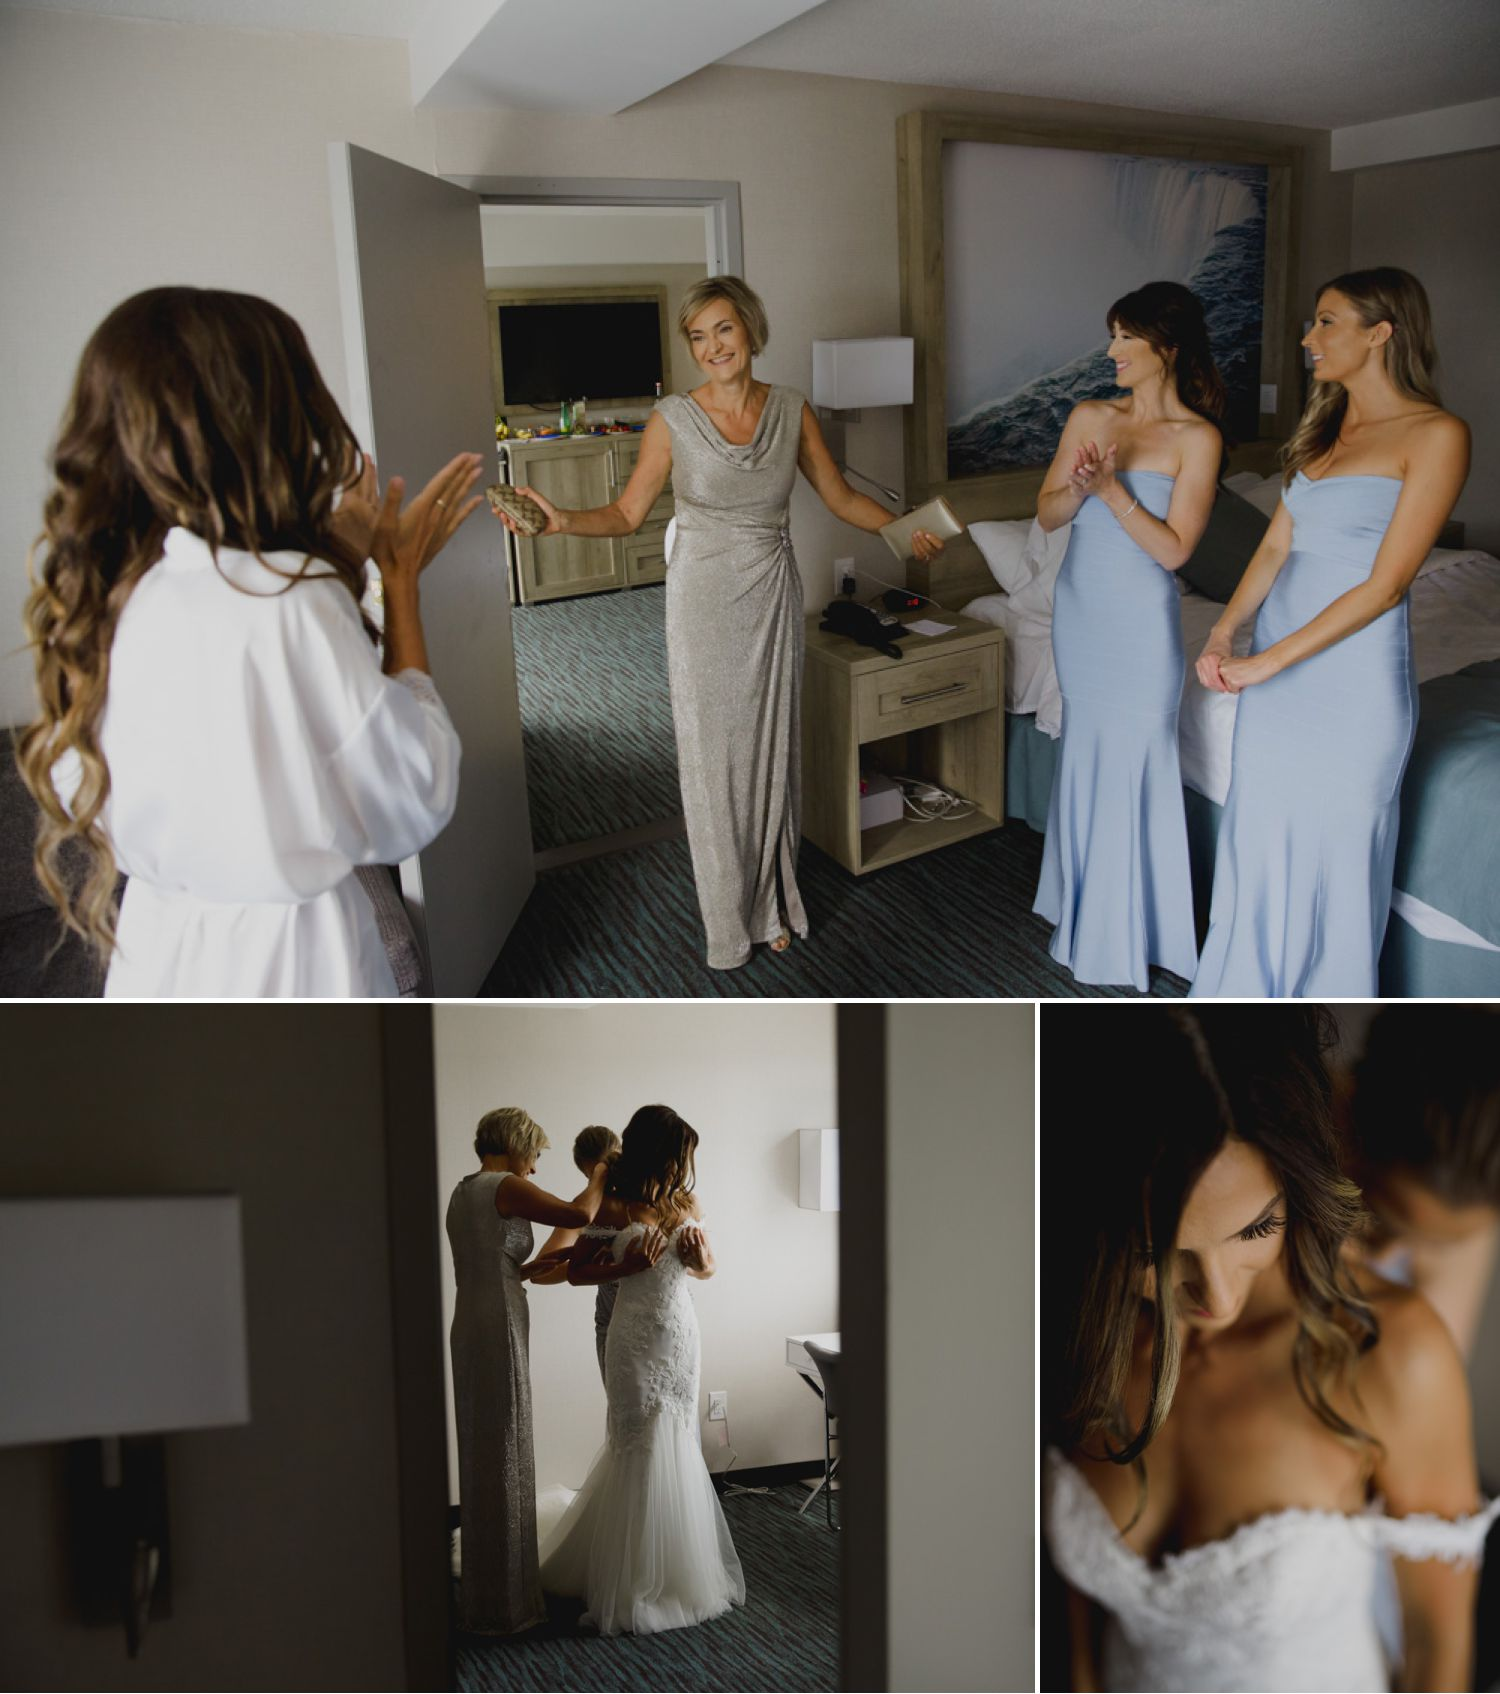 The bride with her mother and bridesmaids getting ready before the wedding ceremony at Niagara-on-the-Lake